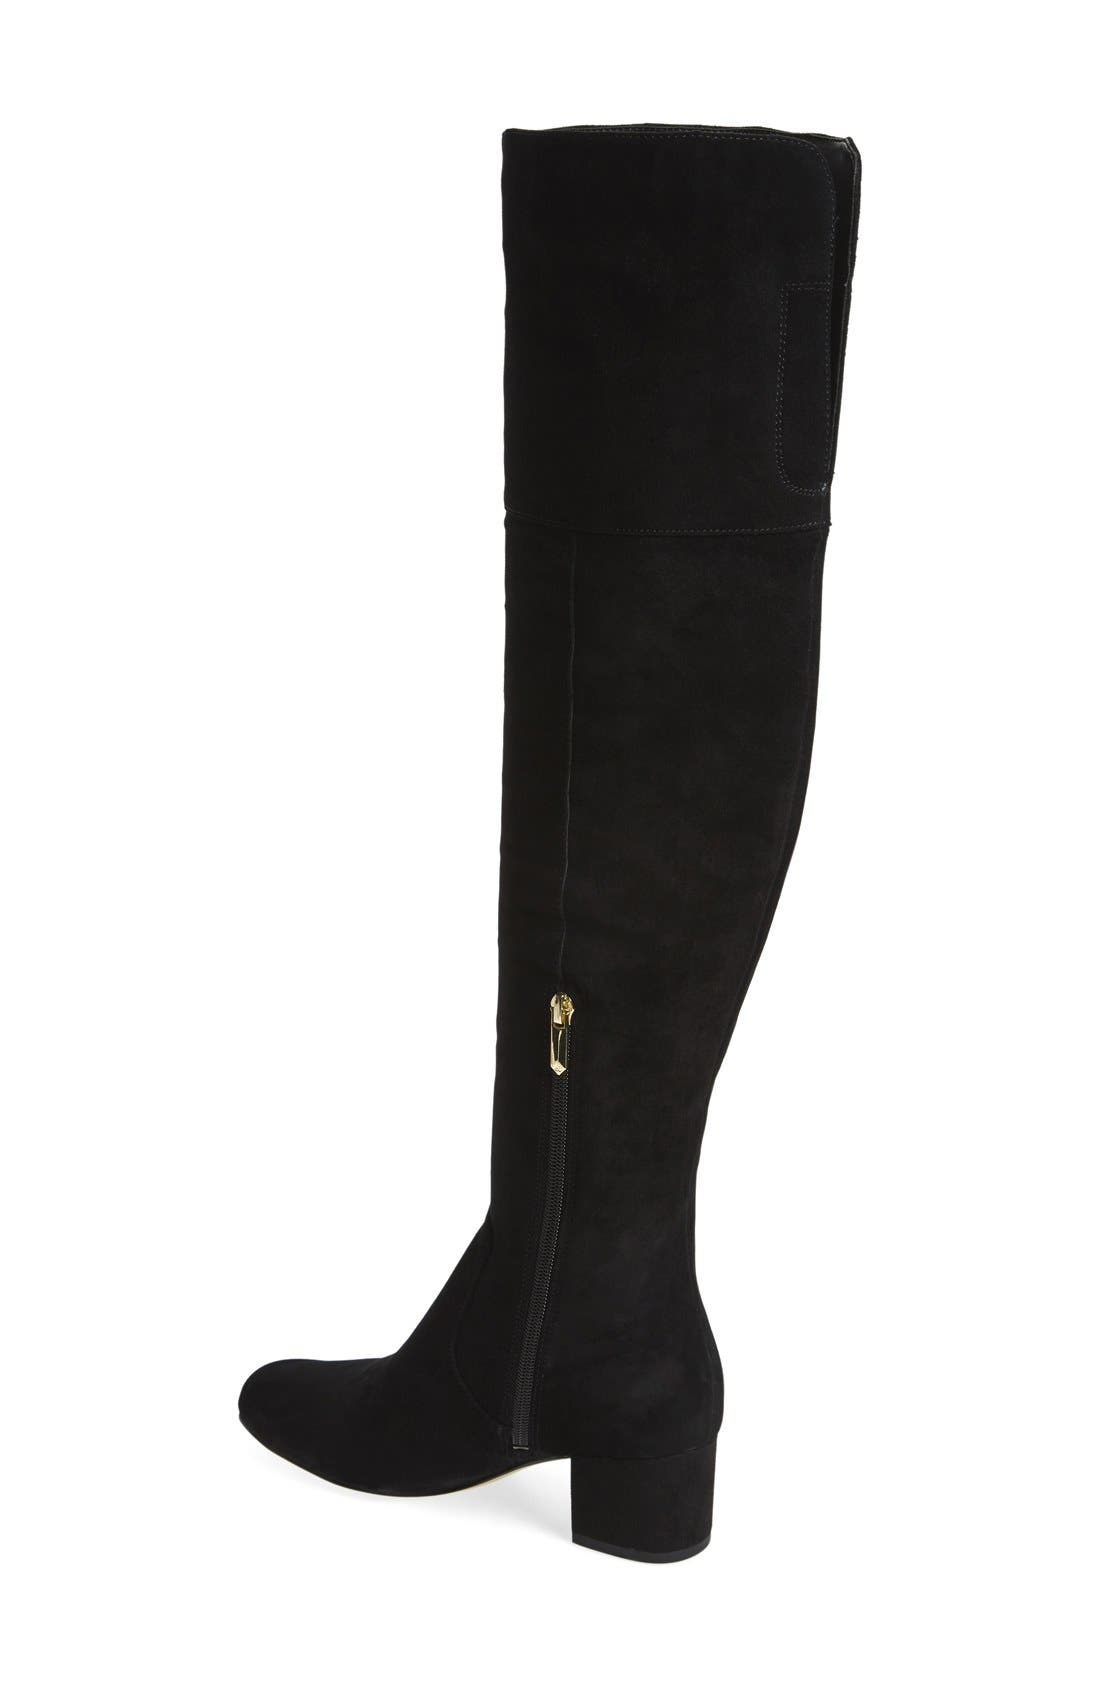 'Elina' Over the Knee Boot,                             Alternate thumbnail 2, color,                             Black Suede Leather